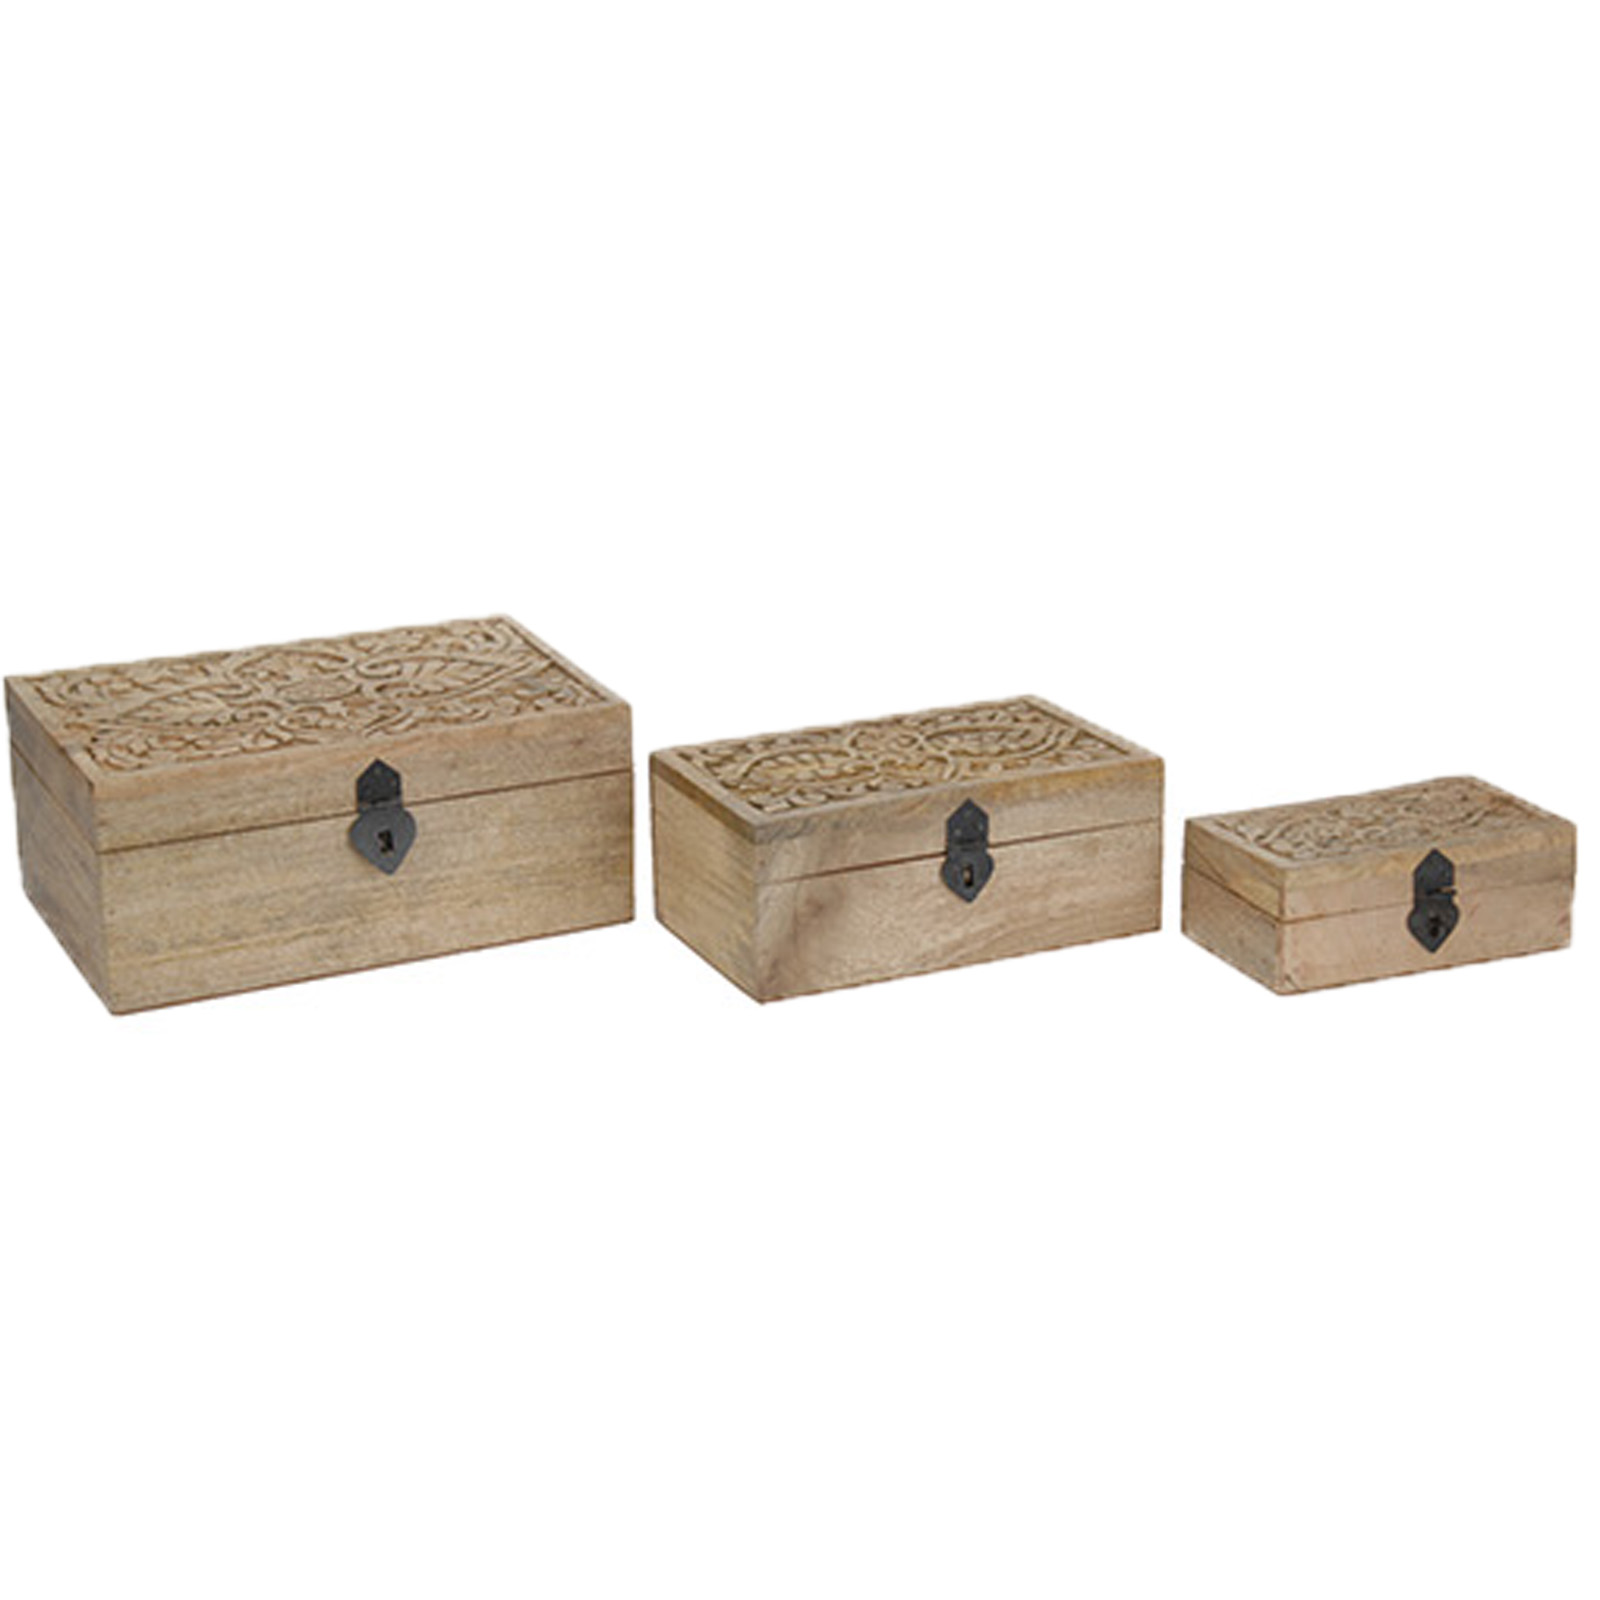 holz schatulle schmuckschatulle 3er set holztruhe box kiste schmuckbox antik ebay. Black Bedroom Furniture Sets. Home Design Ideas